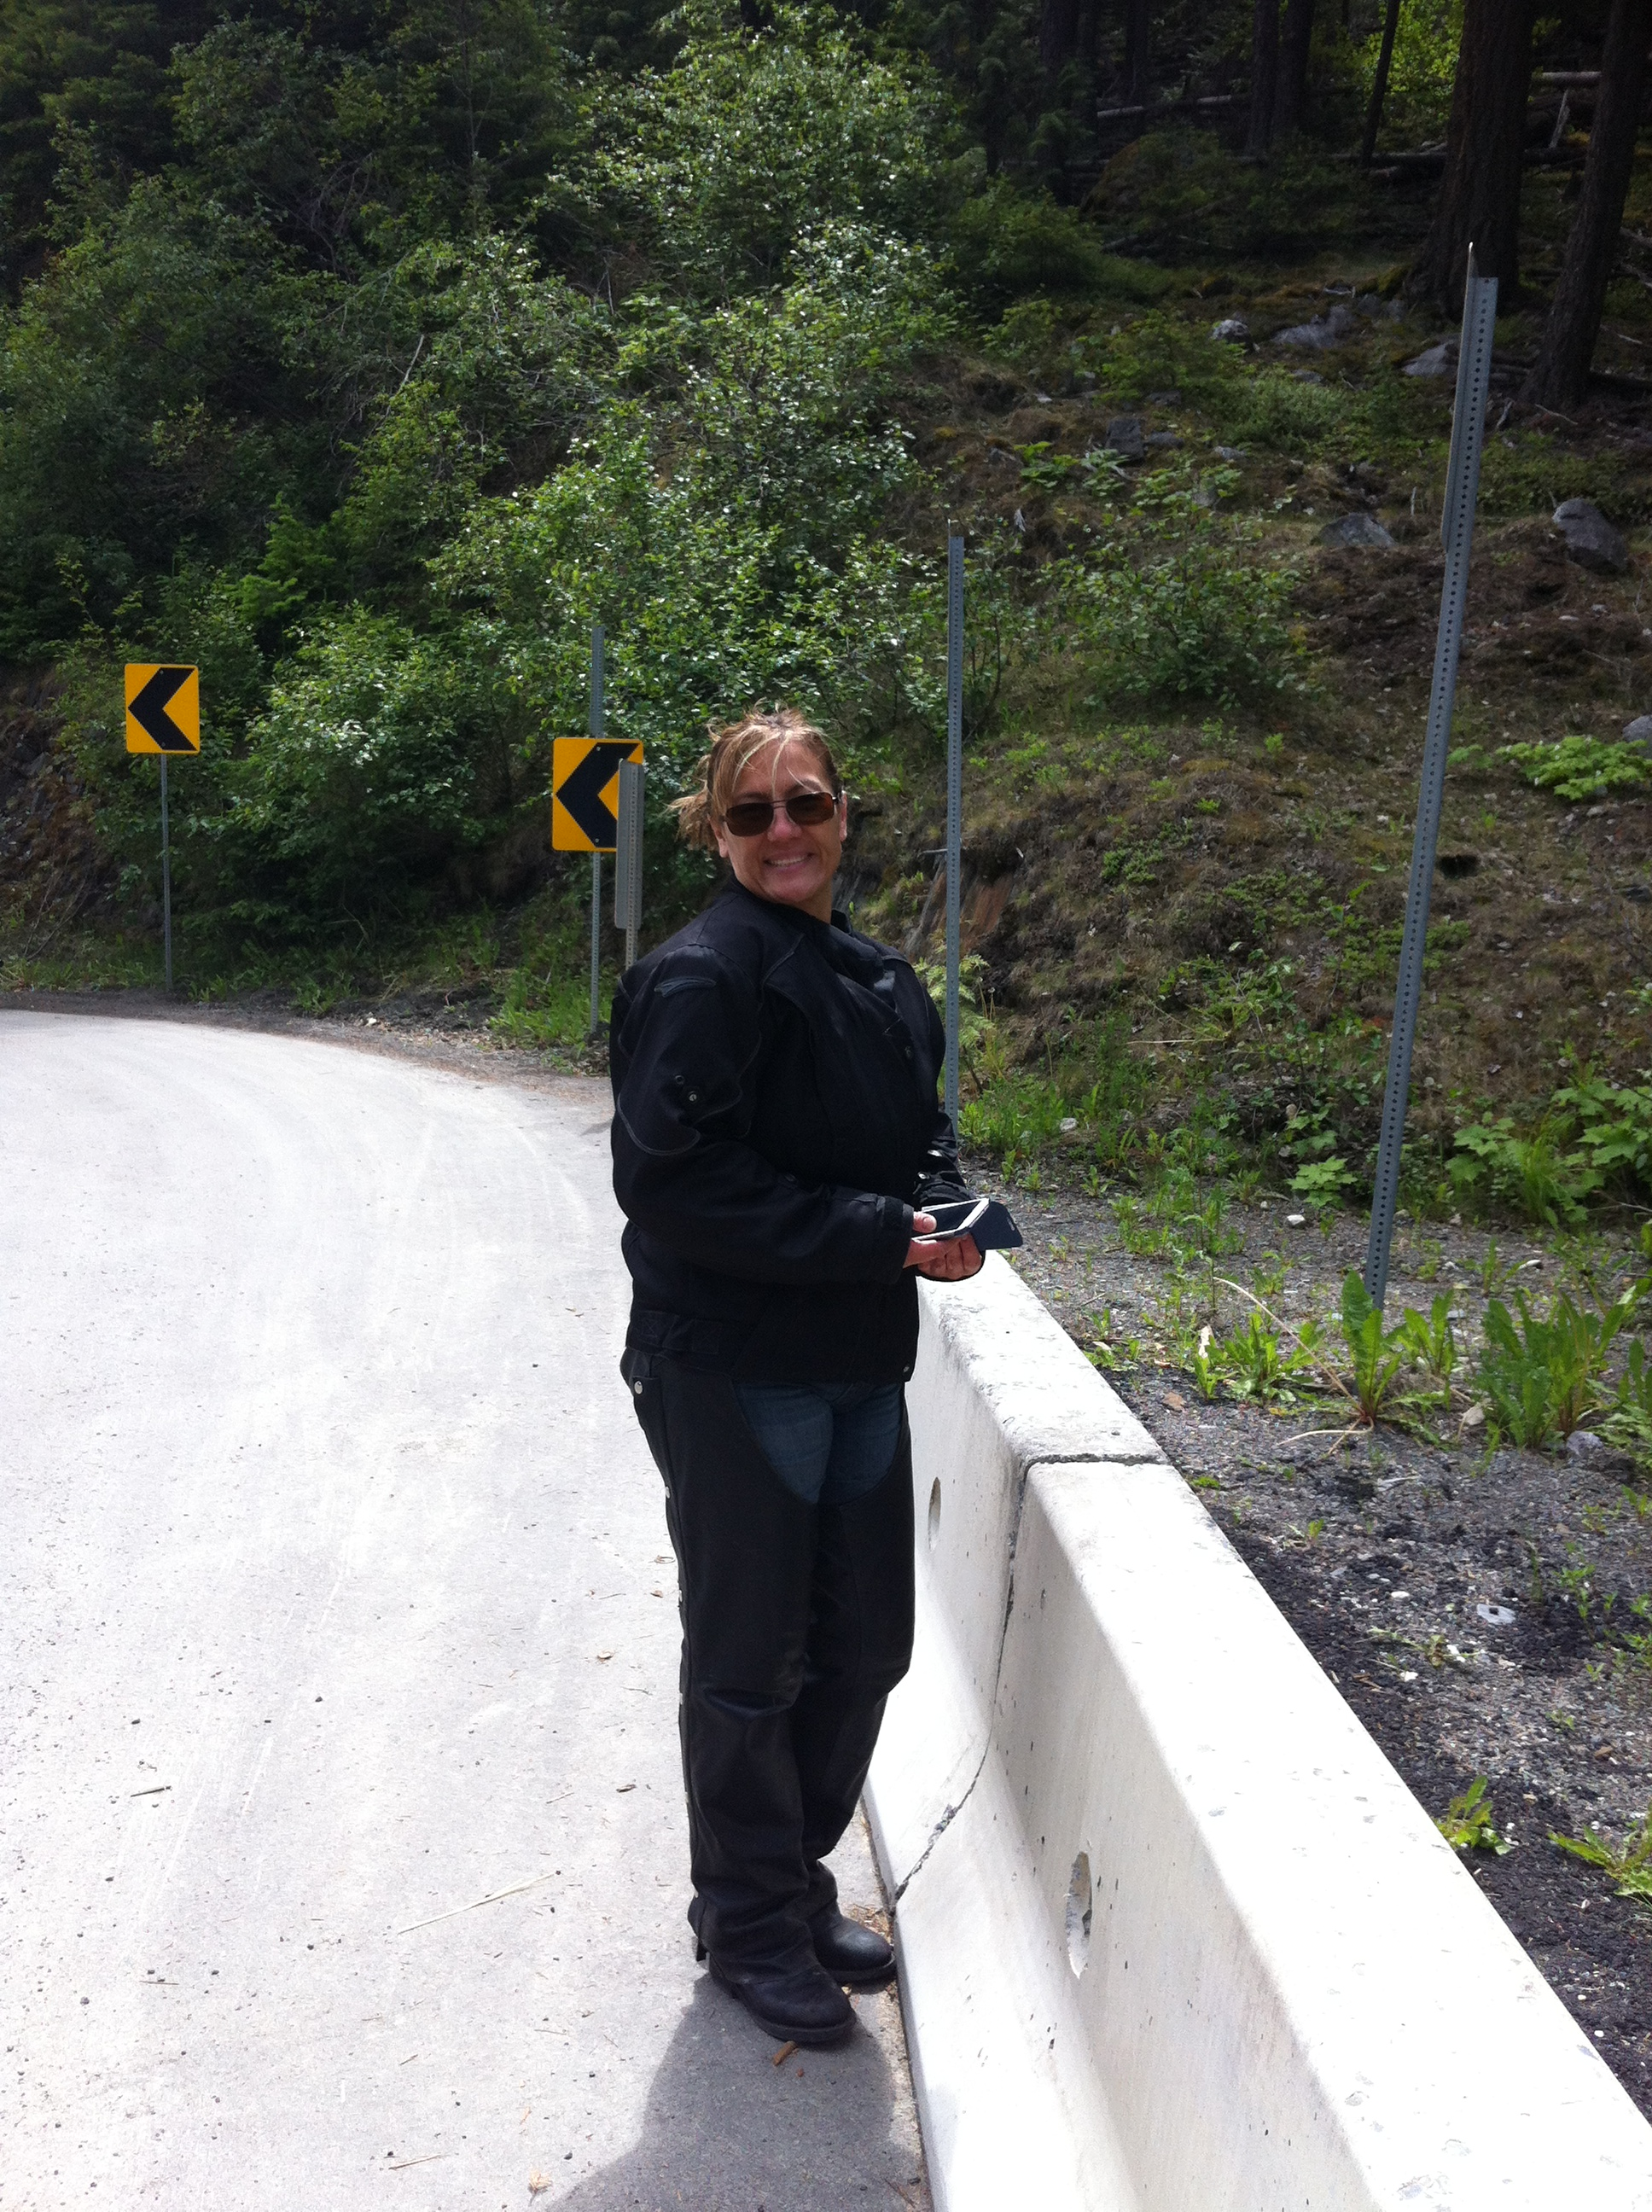 700K day trip June 2014